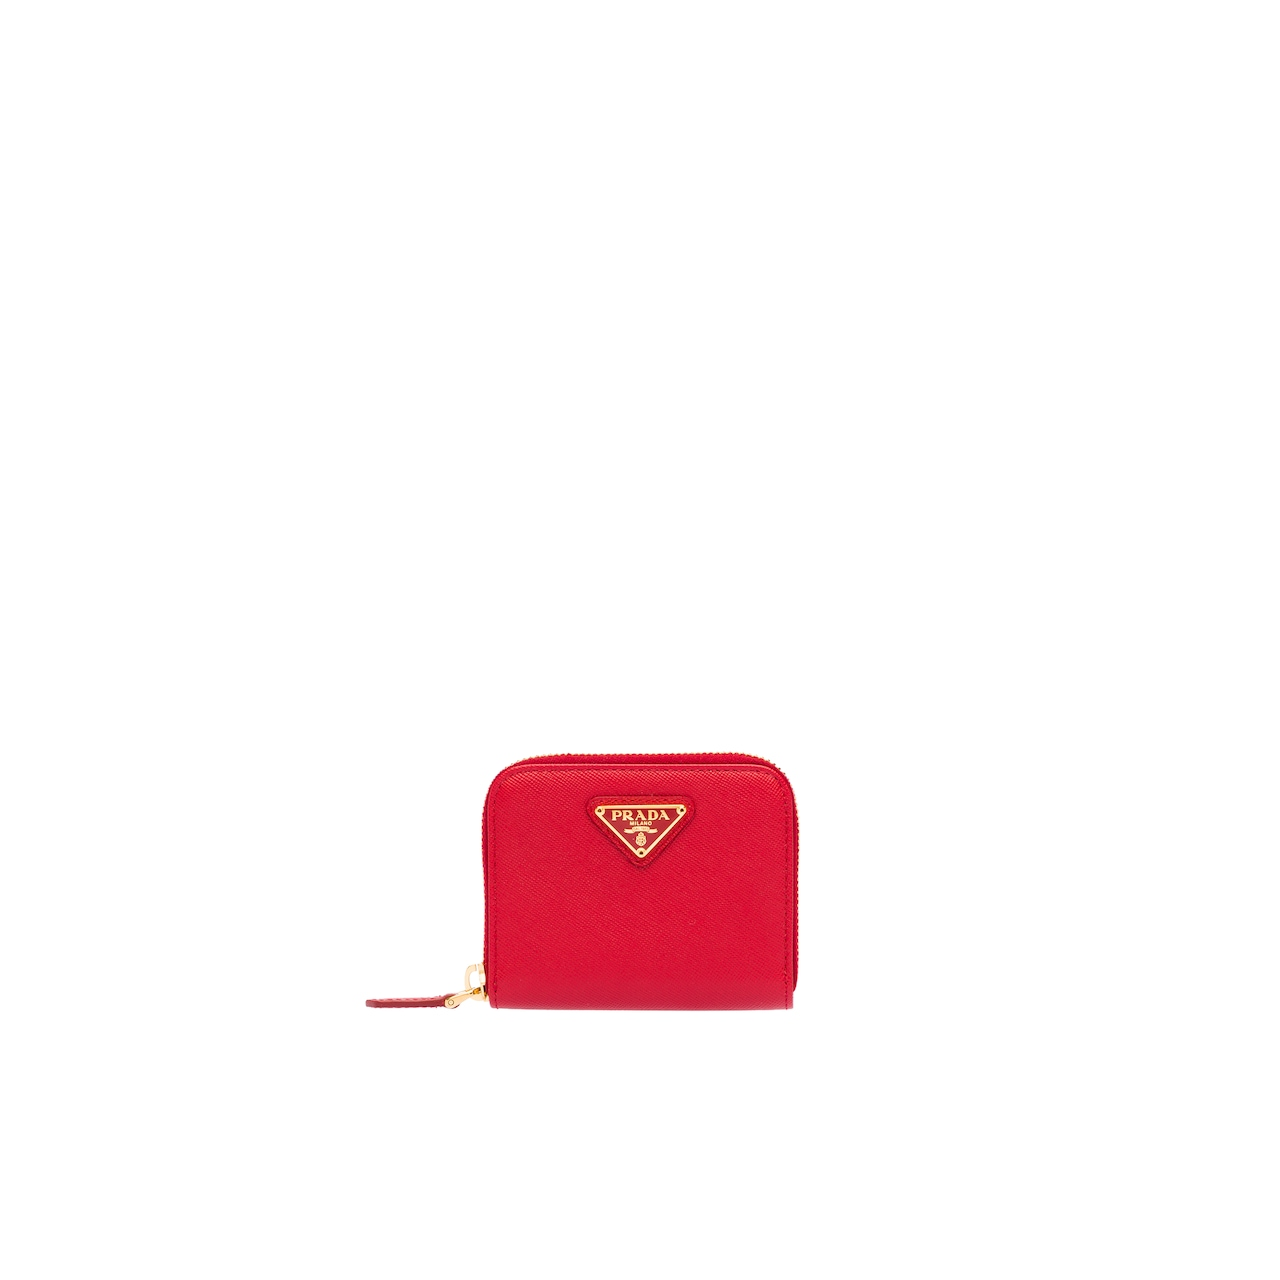 Saffiano Leather Coin Purse